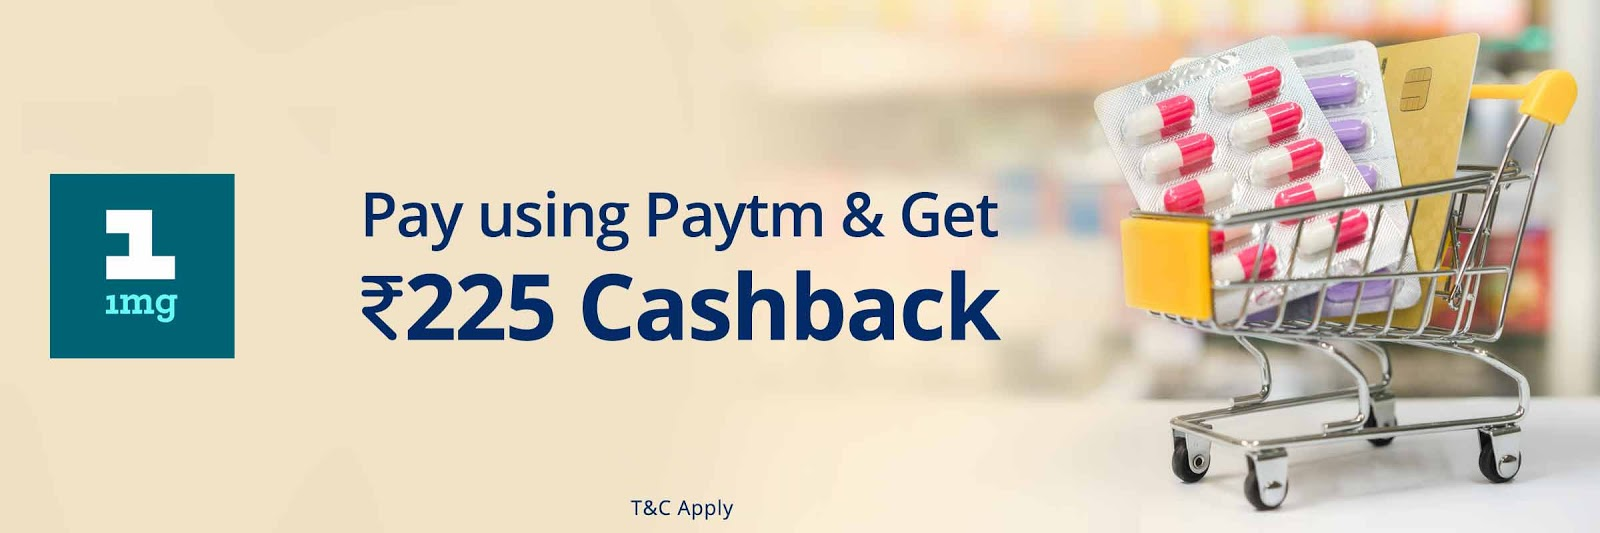 1mg paytm offer 225